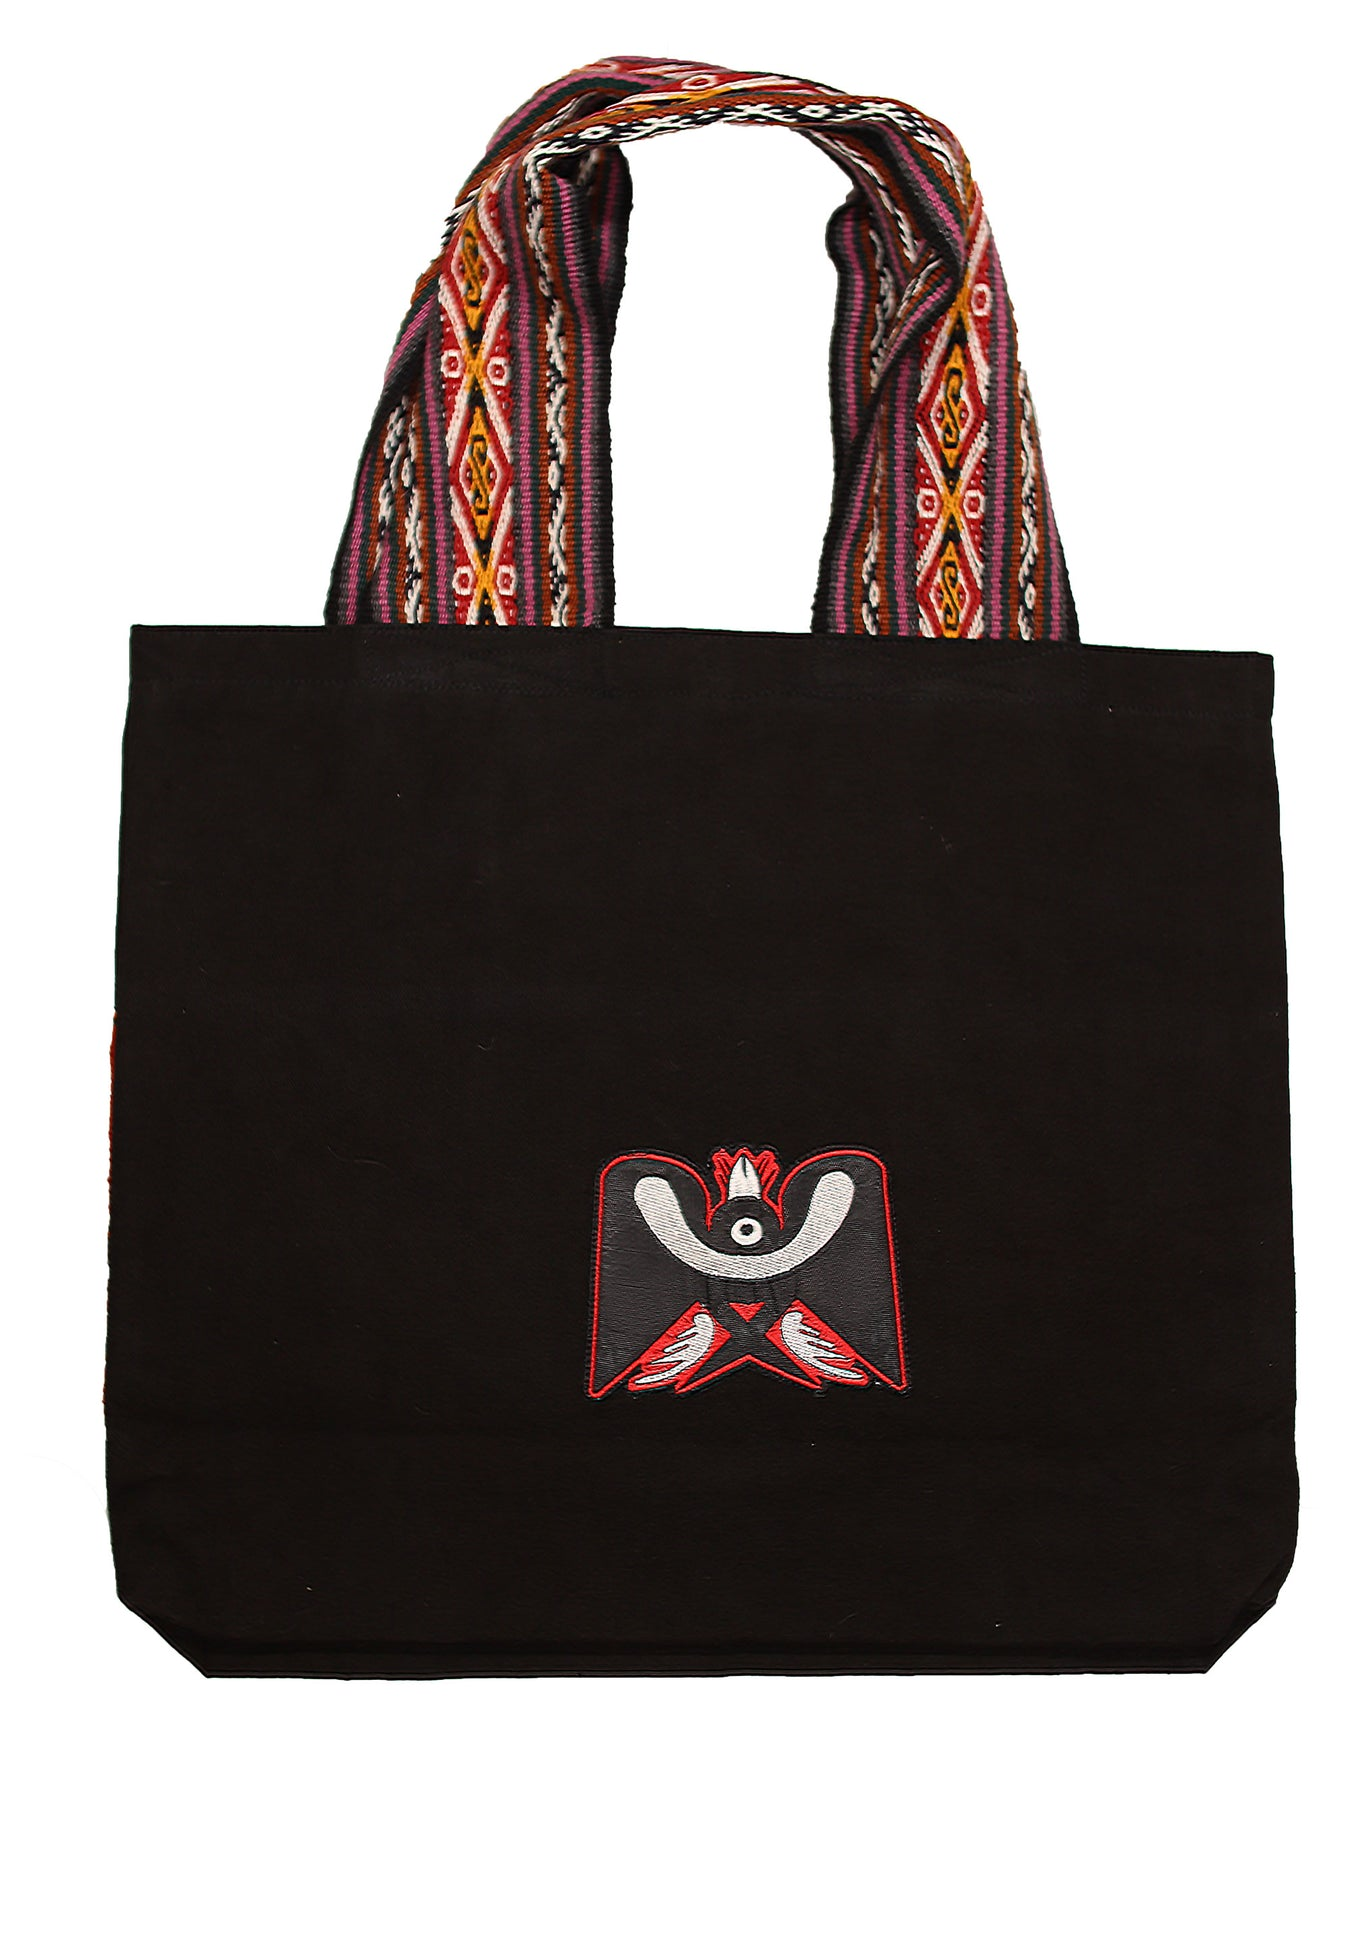 Land R, Peruvian, Handwoven Tote Bags